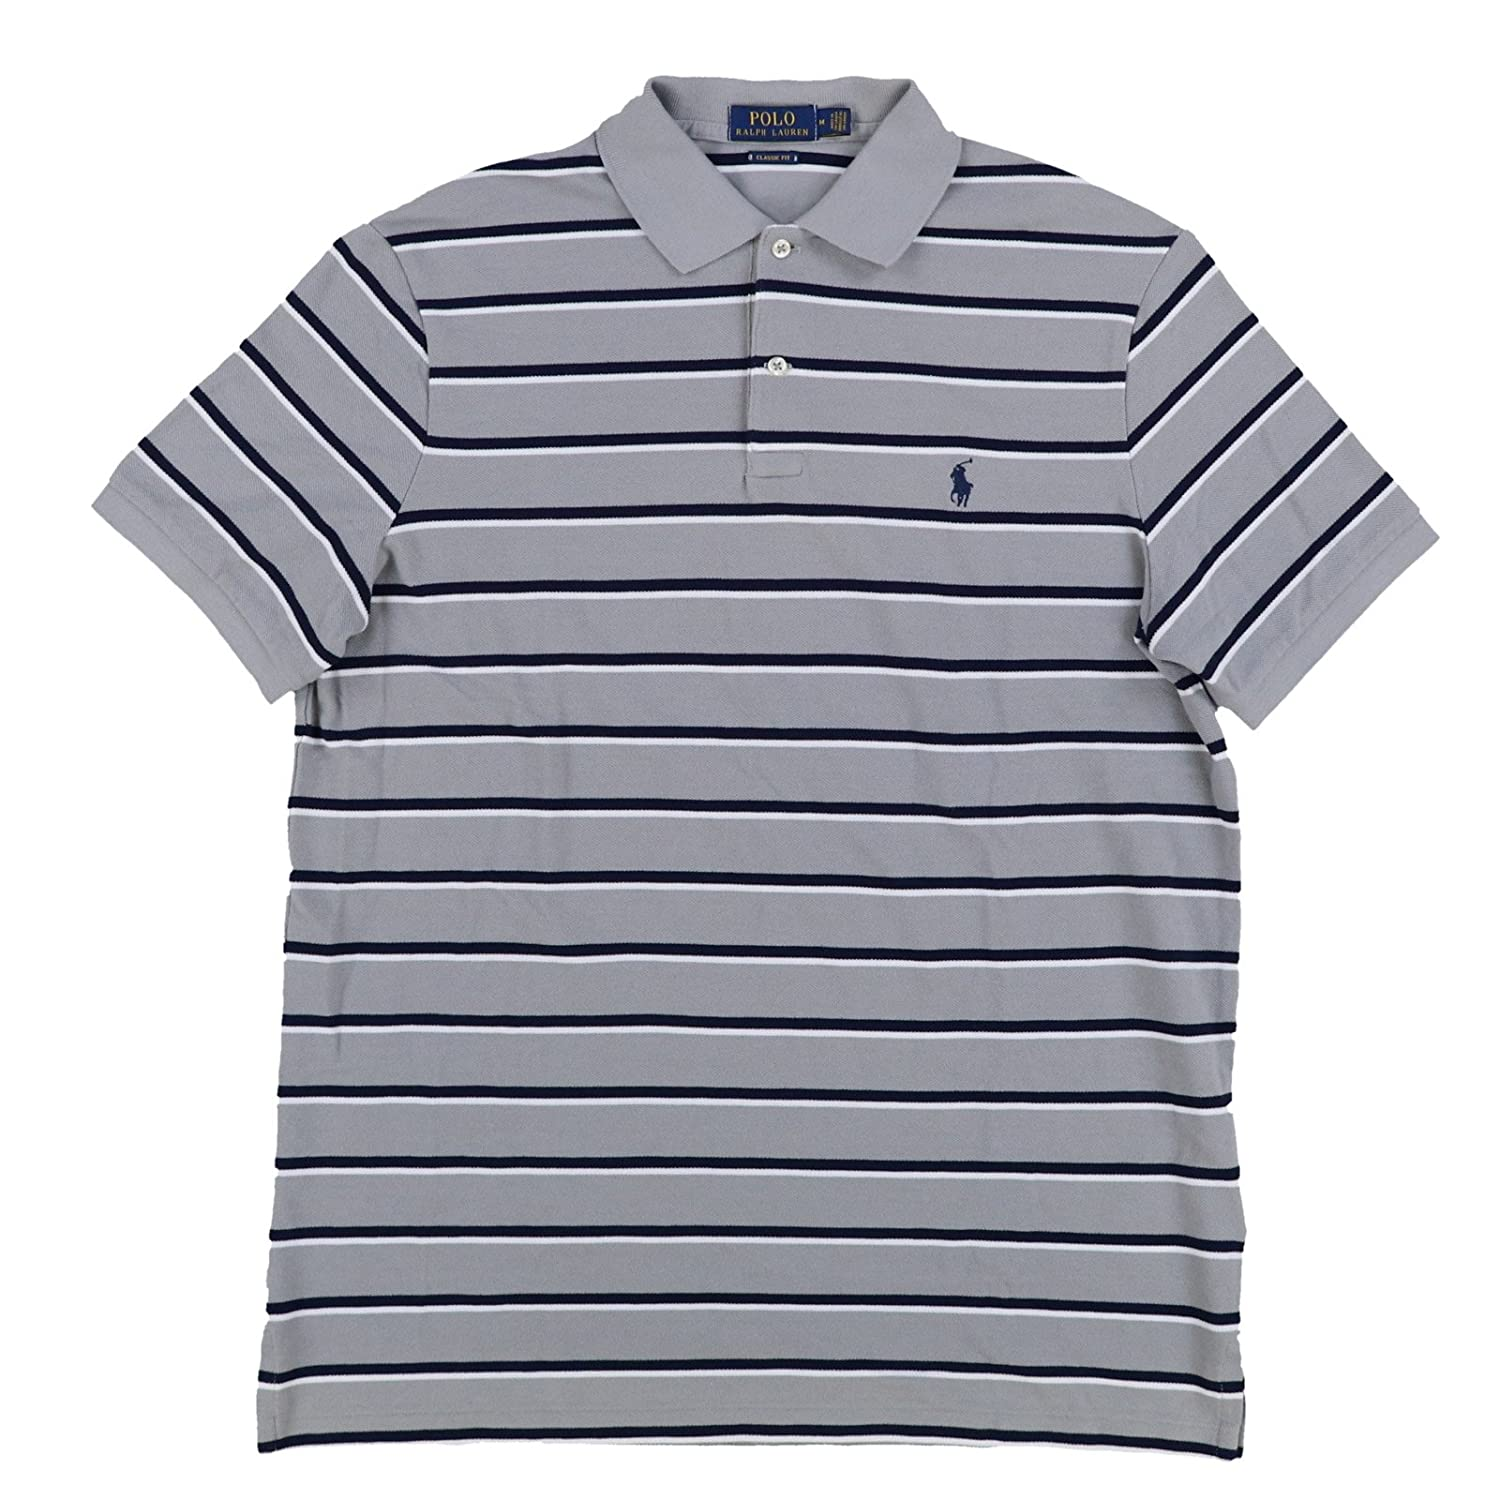 Polo Ralph Lauren Mens Classic Fit Pony Logo Striped Polo Shirt At